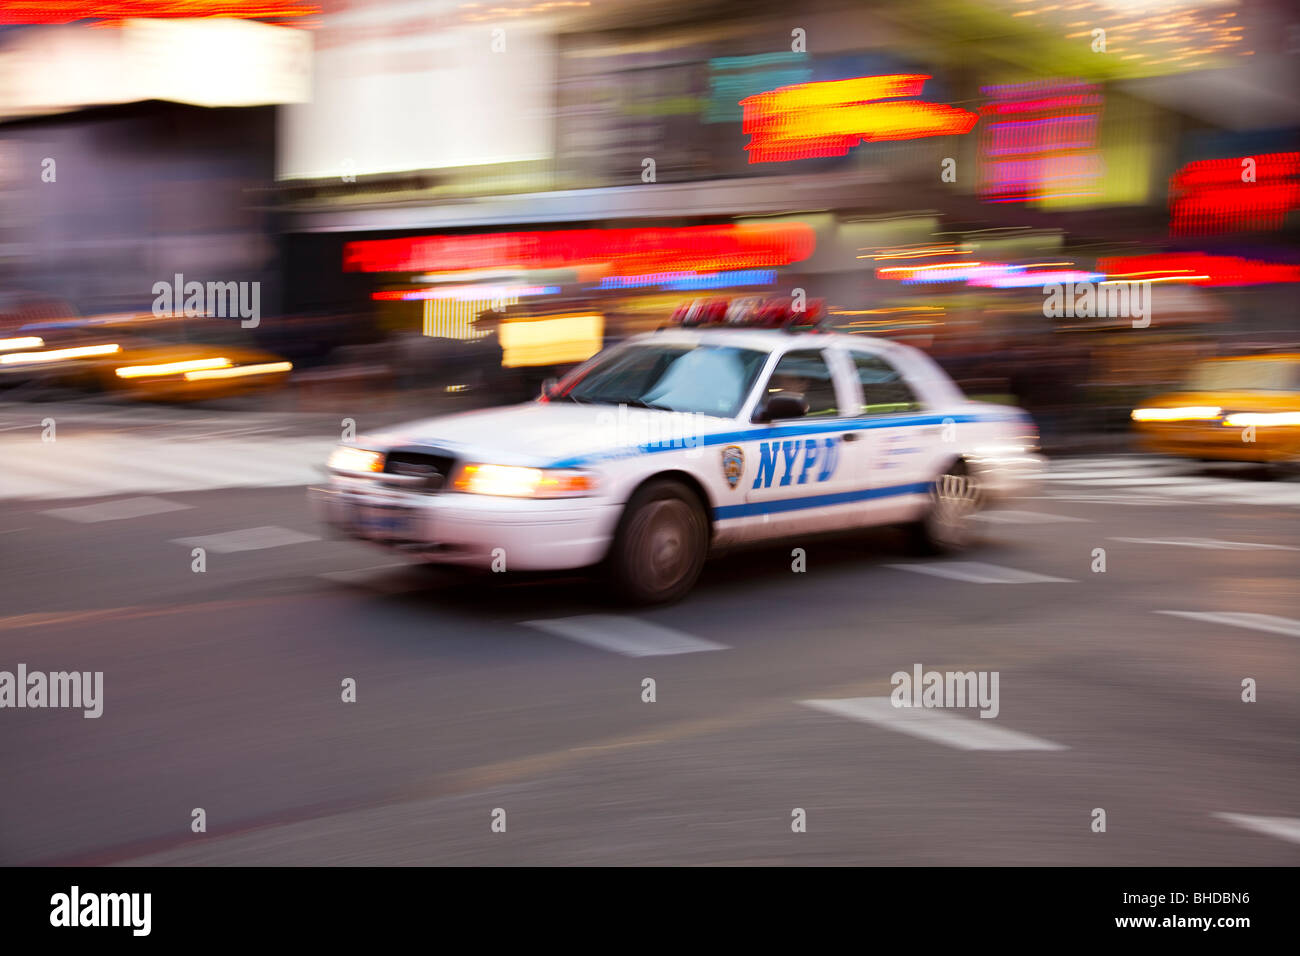 New York Police car in Times Square Stock Photo